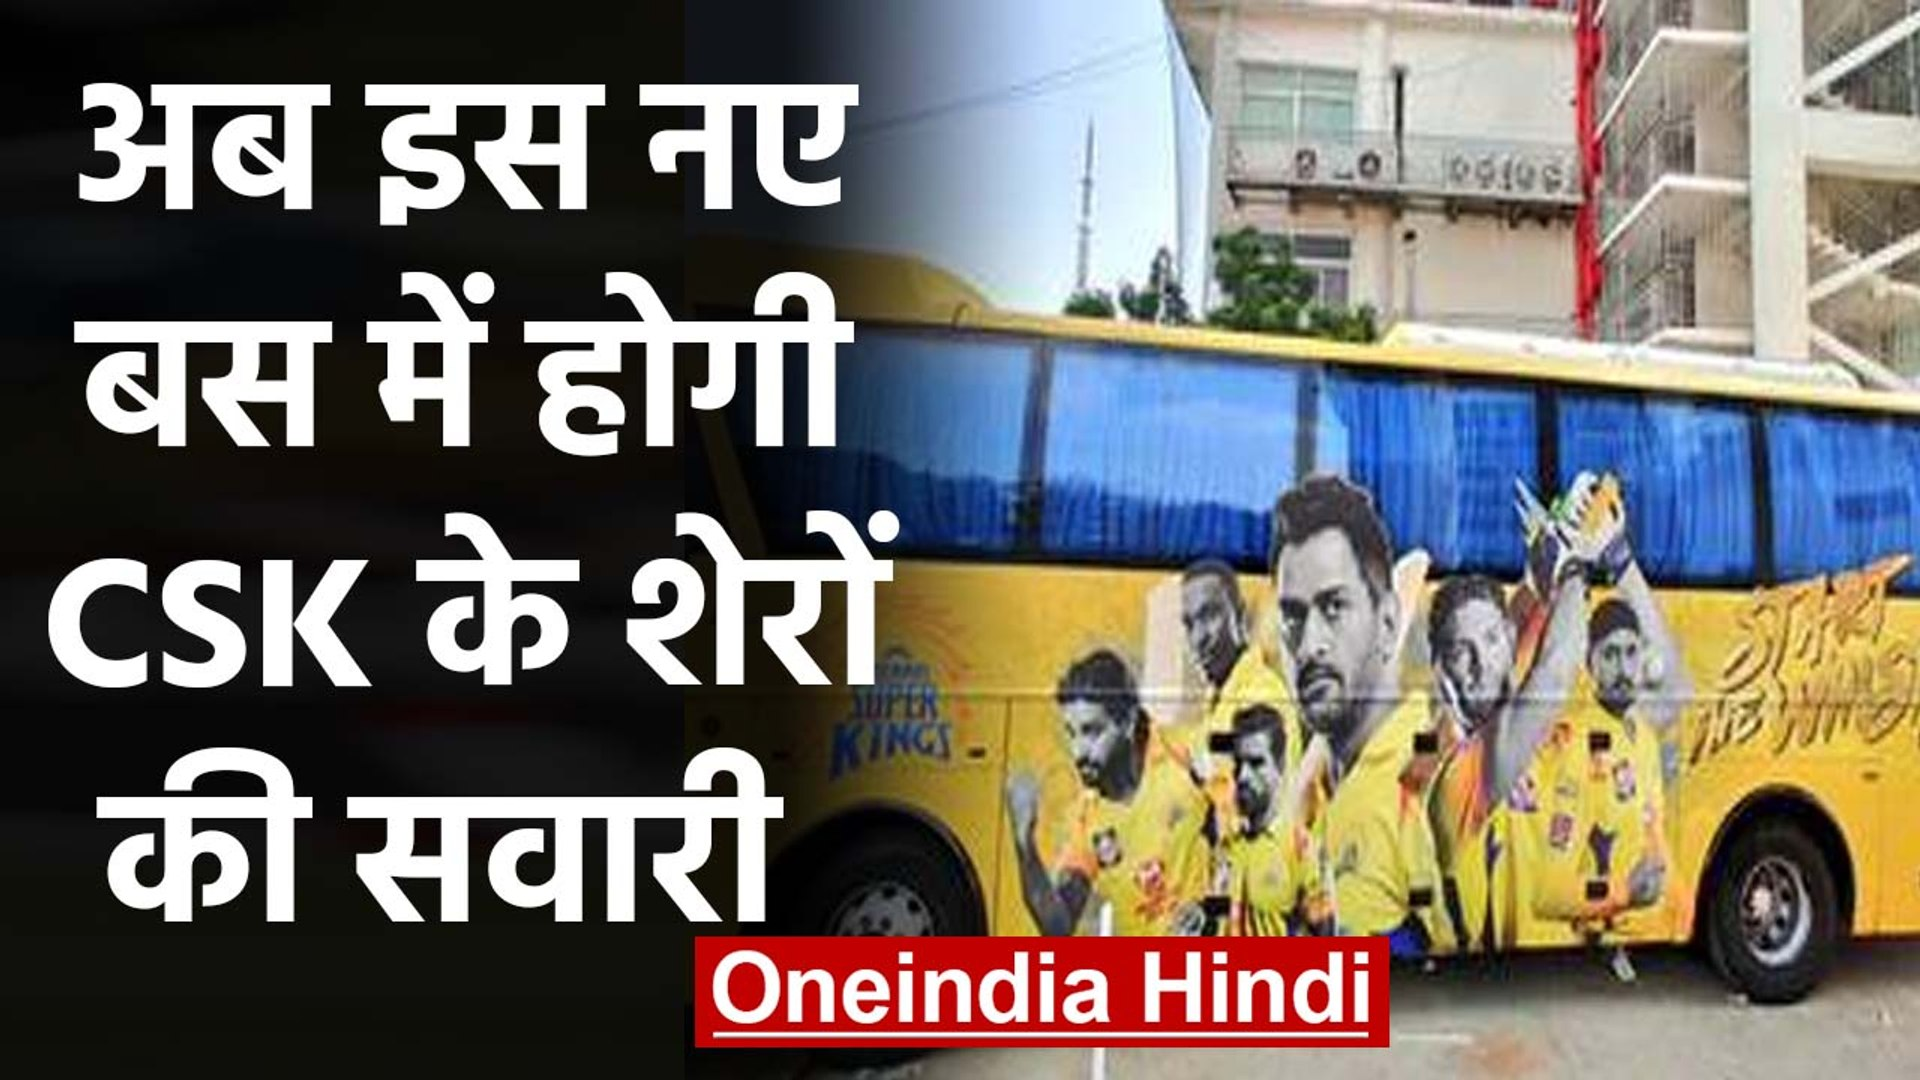 IPL 2020: Chennai Super Kings post pictures of MS Dhoni's CSK Team New Bus | वनइंडिया हिंदी